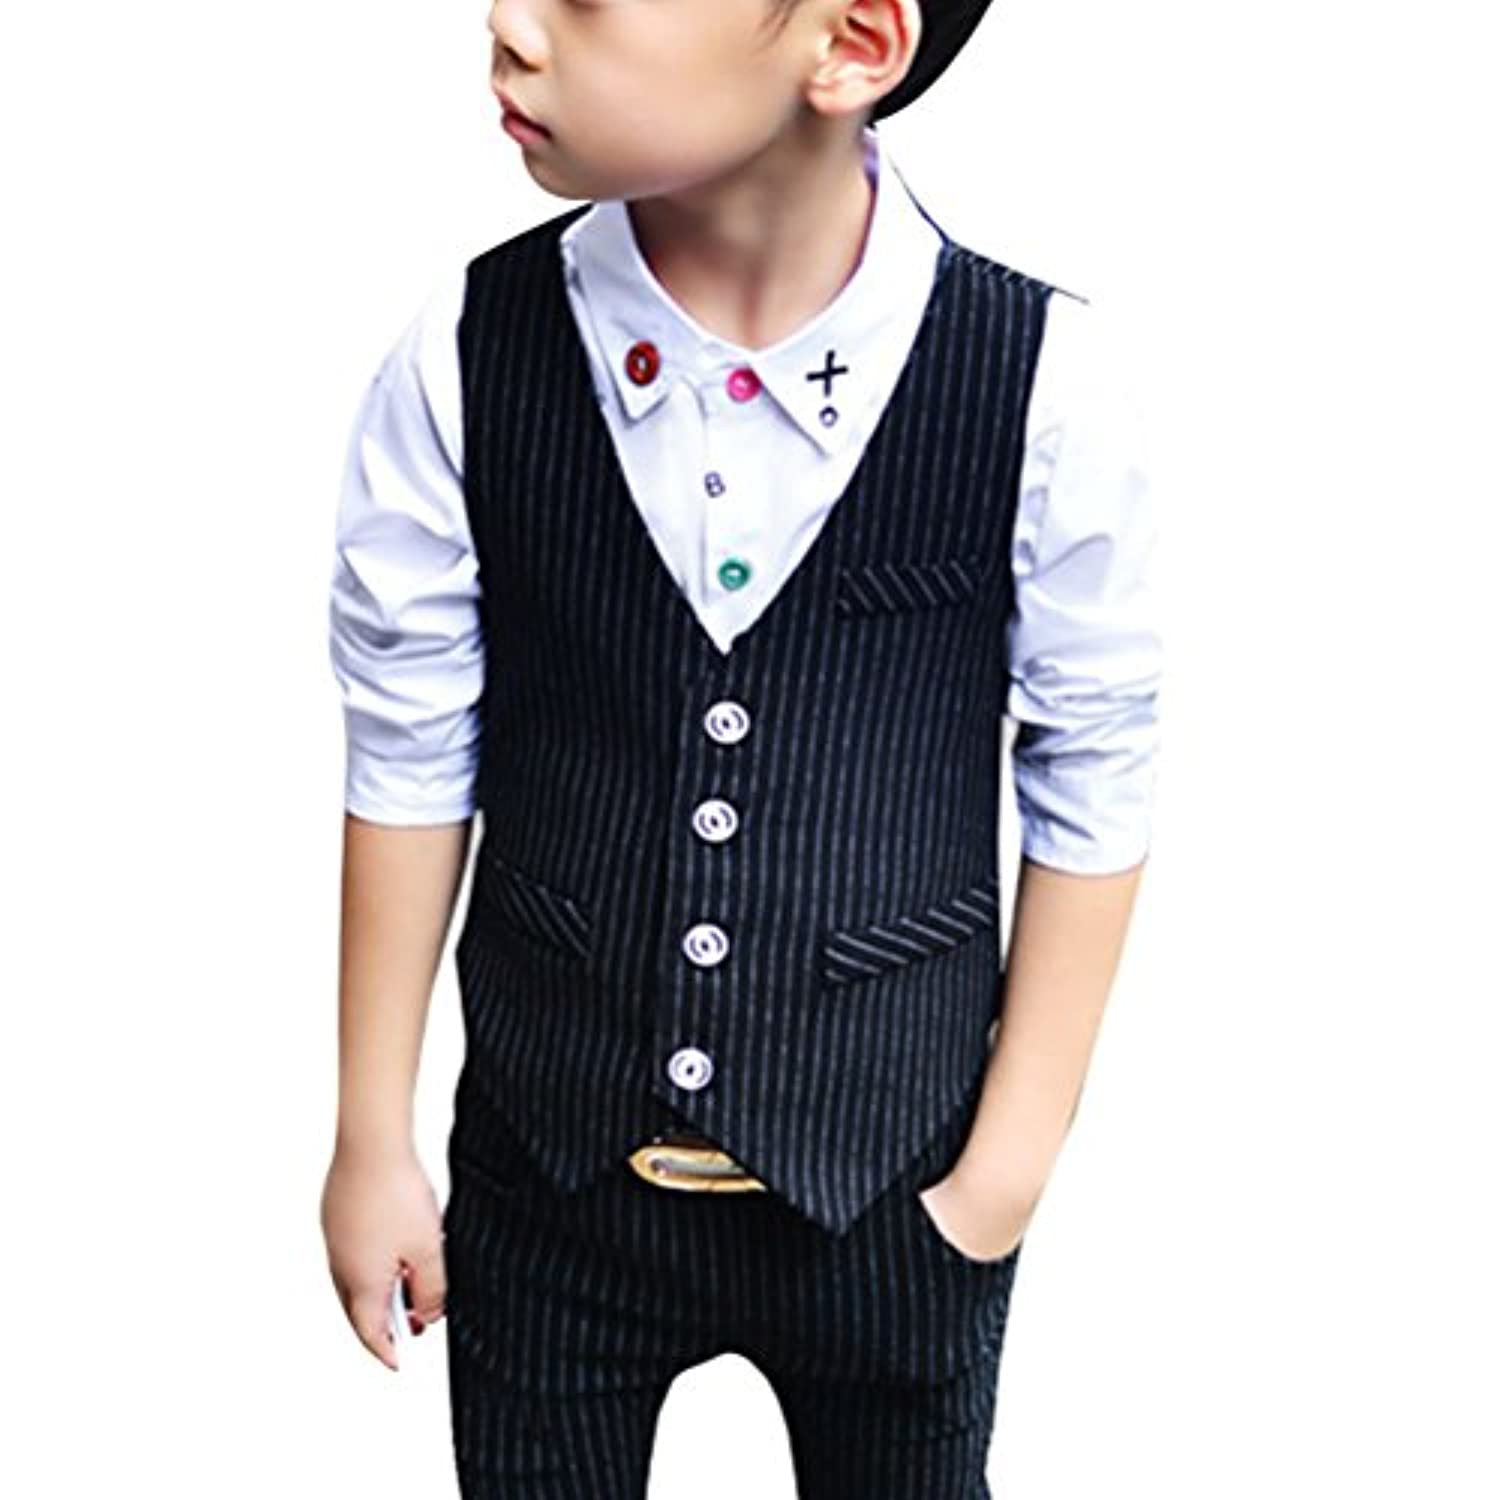 Zhhlaixing Boys 2 Piece Cotton Suit Waistcoat Trousers Wedding Suit Page Boy Party Prom Formal Age 5-16 Years